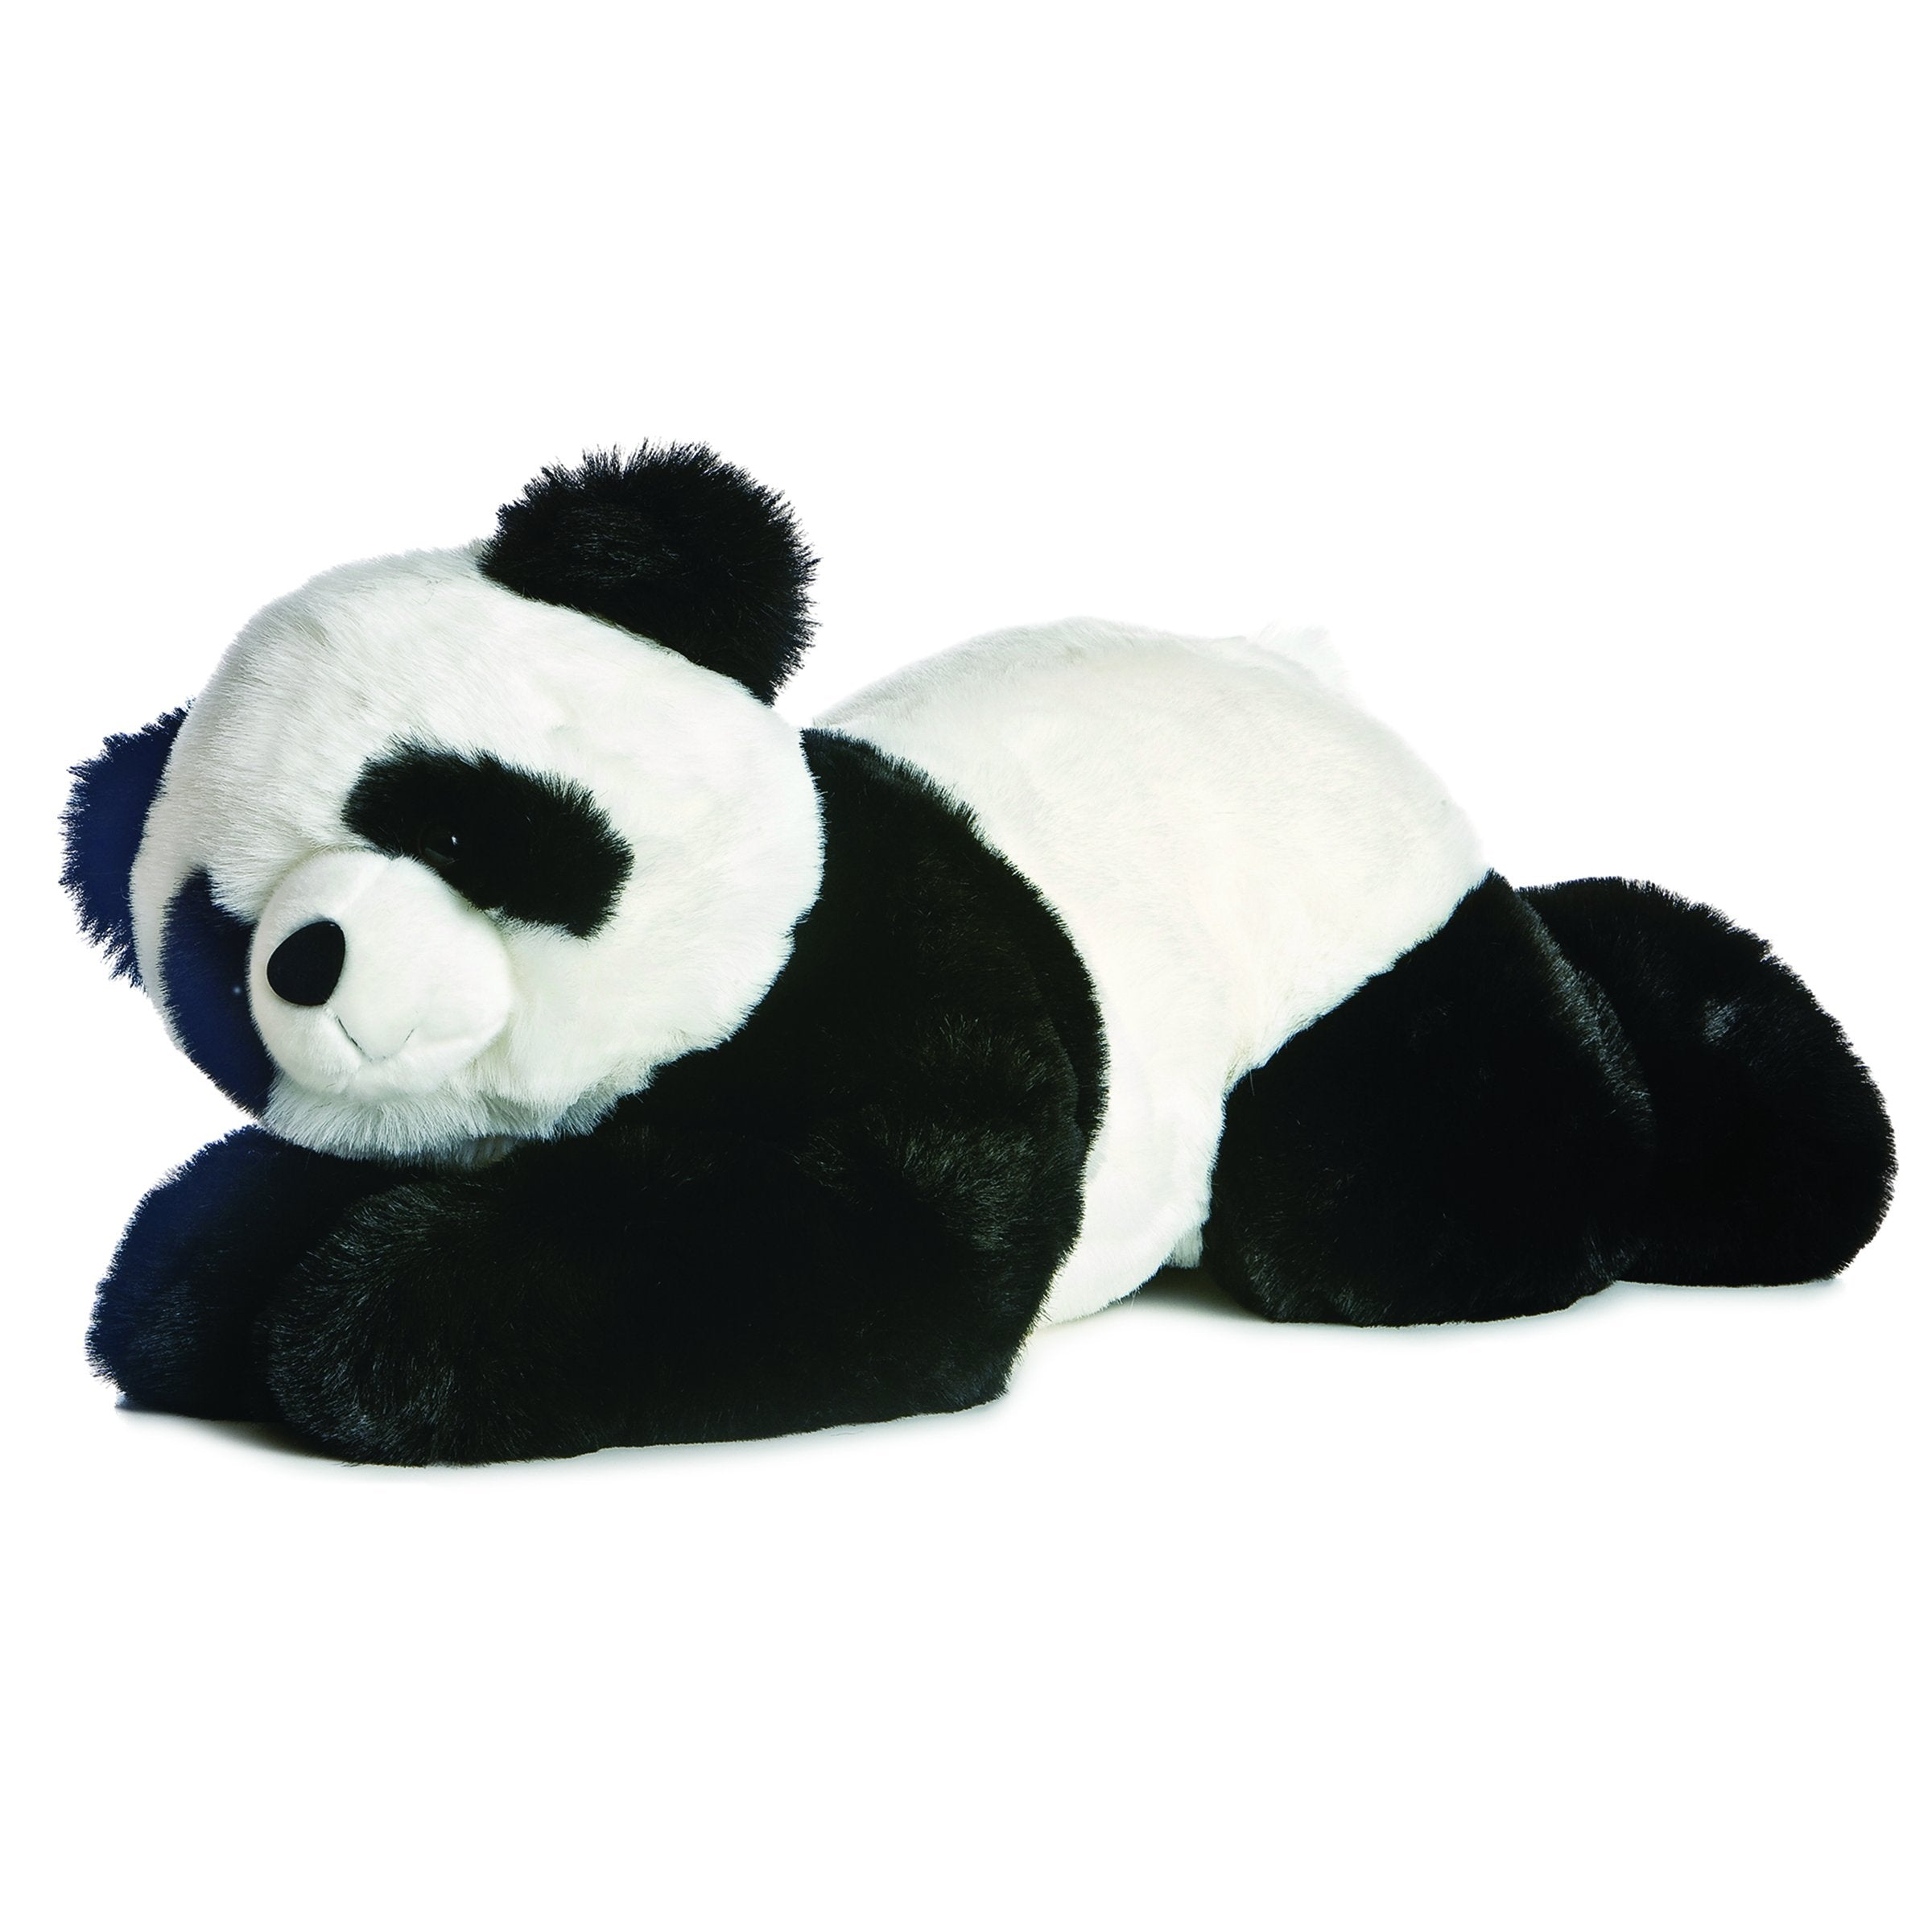 Xie-Xie the Panda  - Super Flopsie